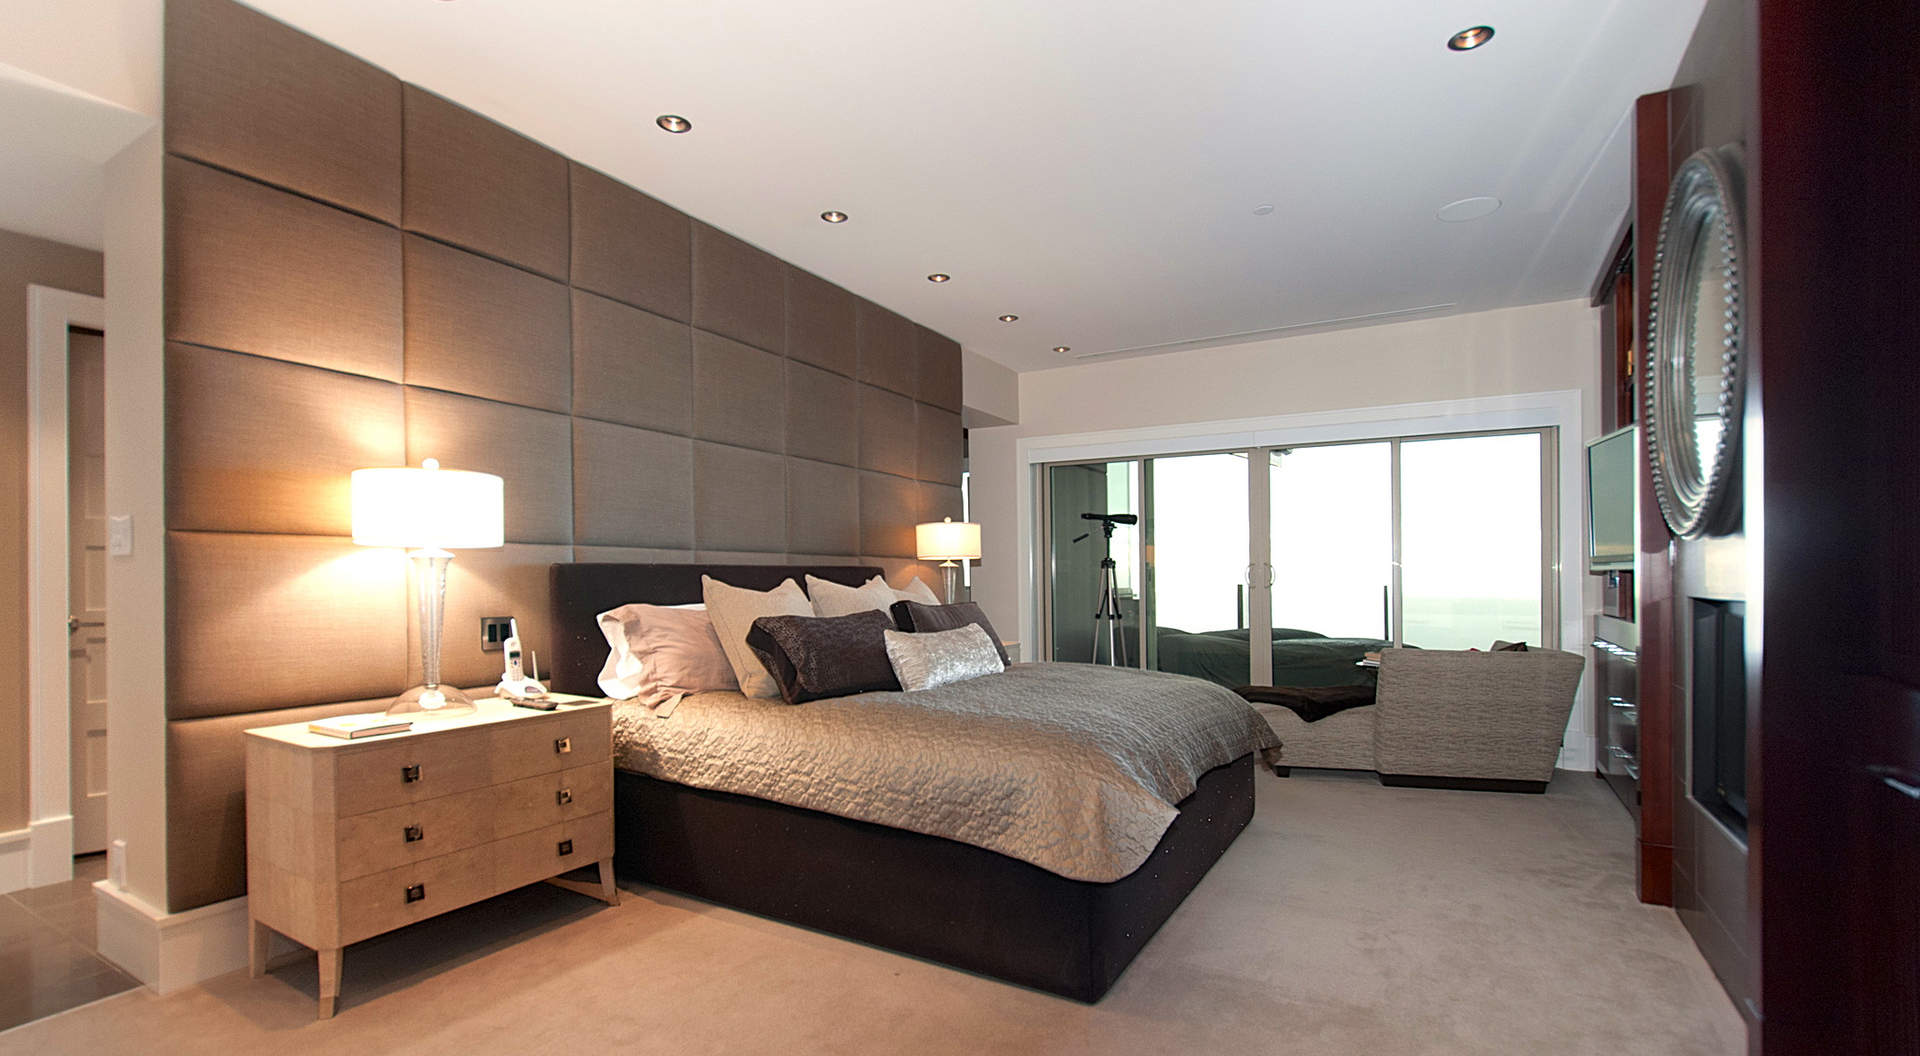 Penthouse master bedroom interior design ideas Master bedroom designs pictures